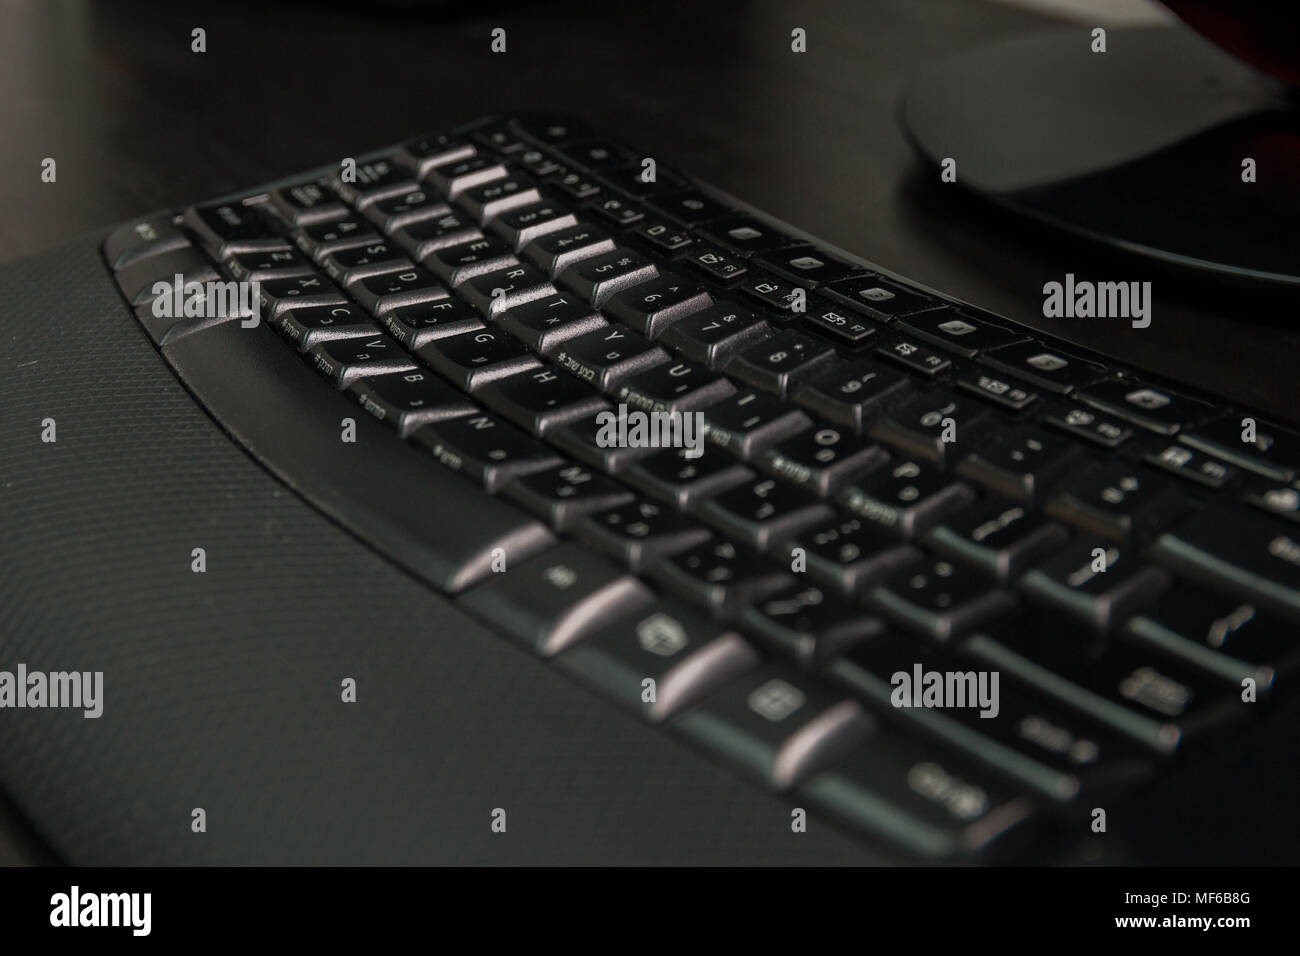 Keyboard with letters in Hebrew and English - Wireless keyboard - Stock Image